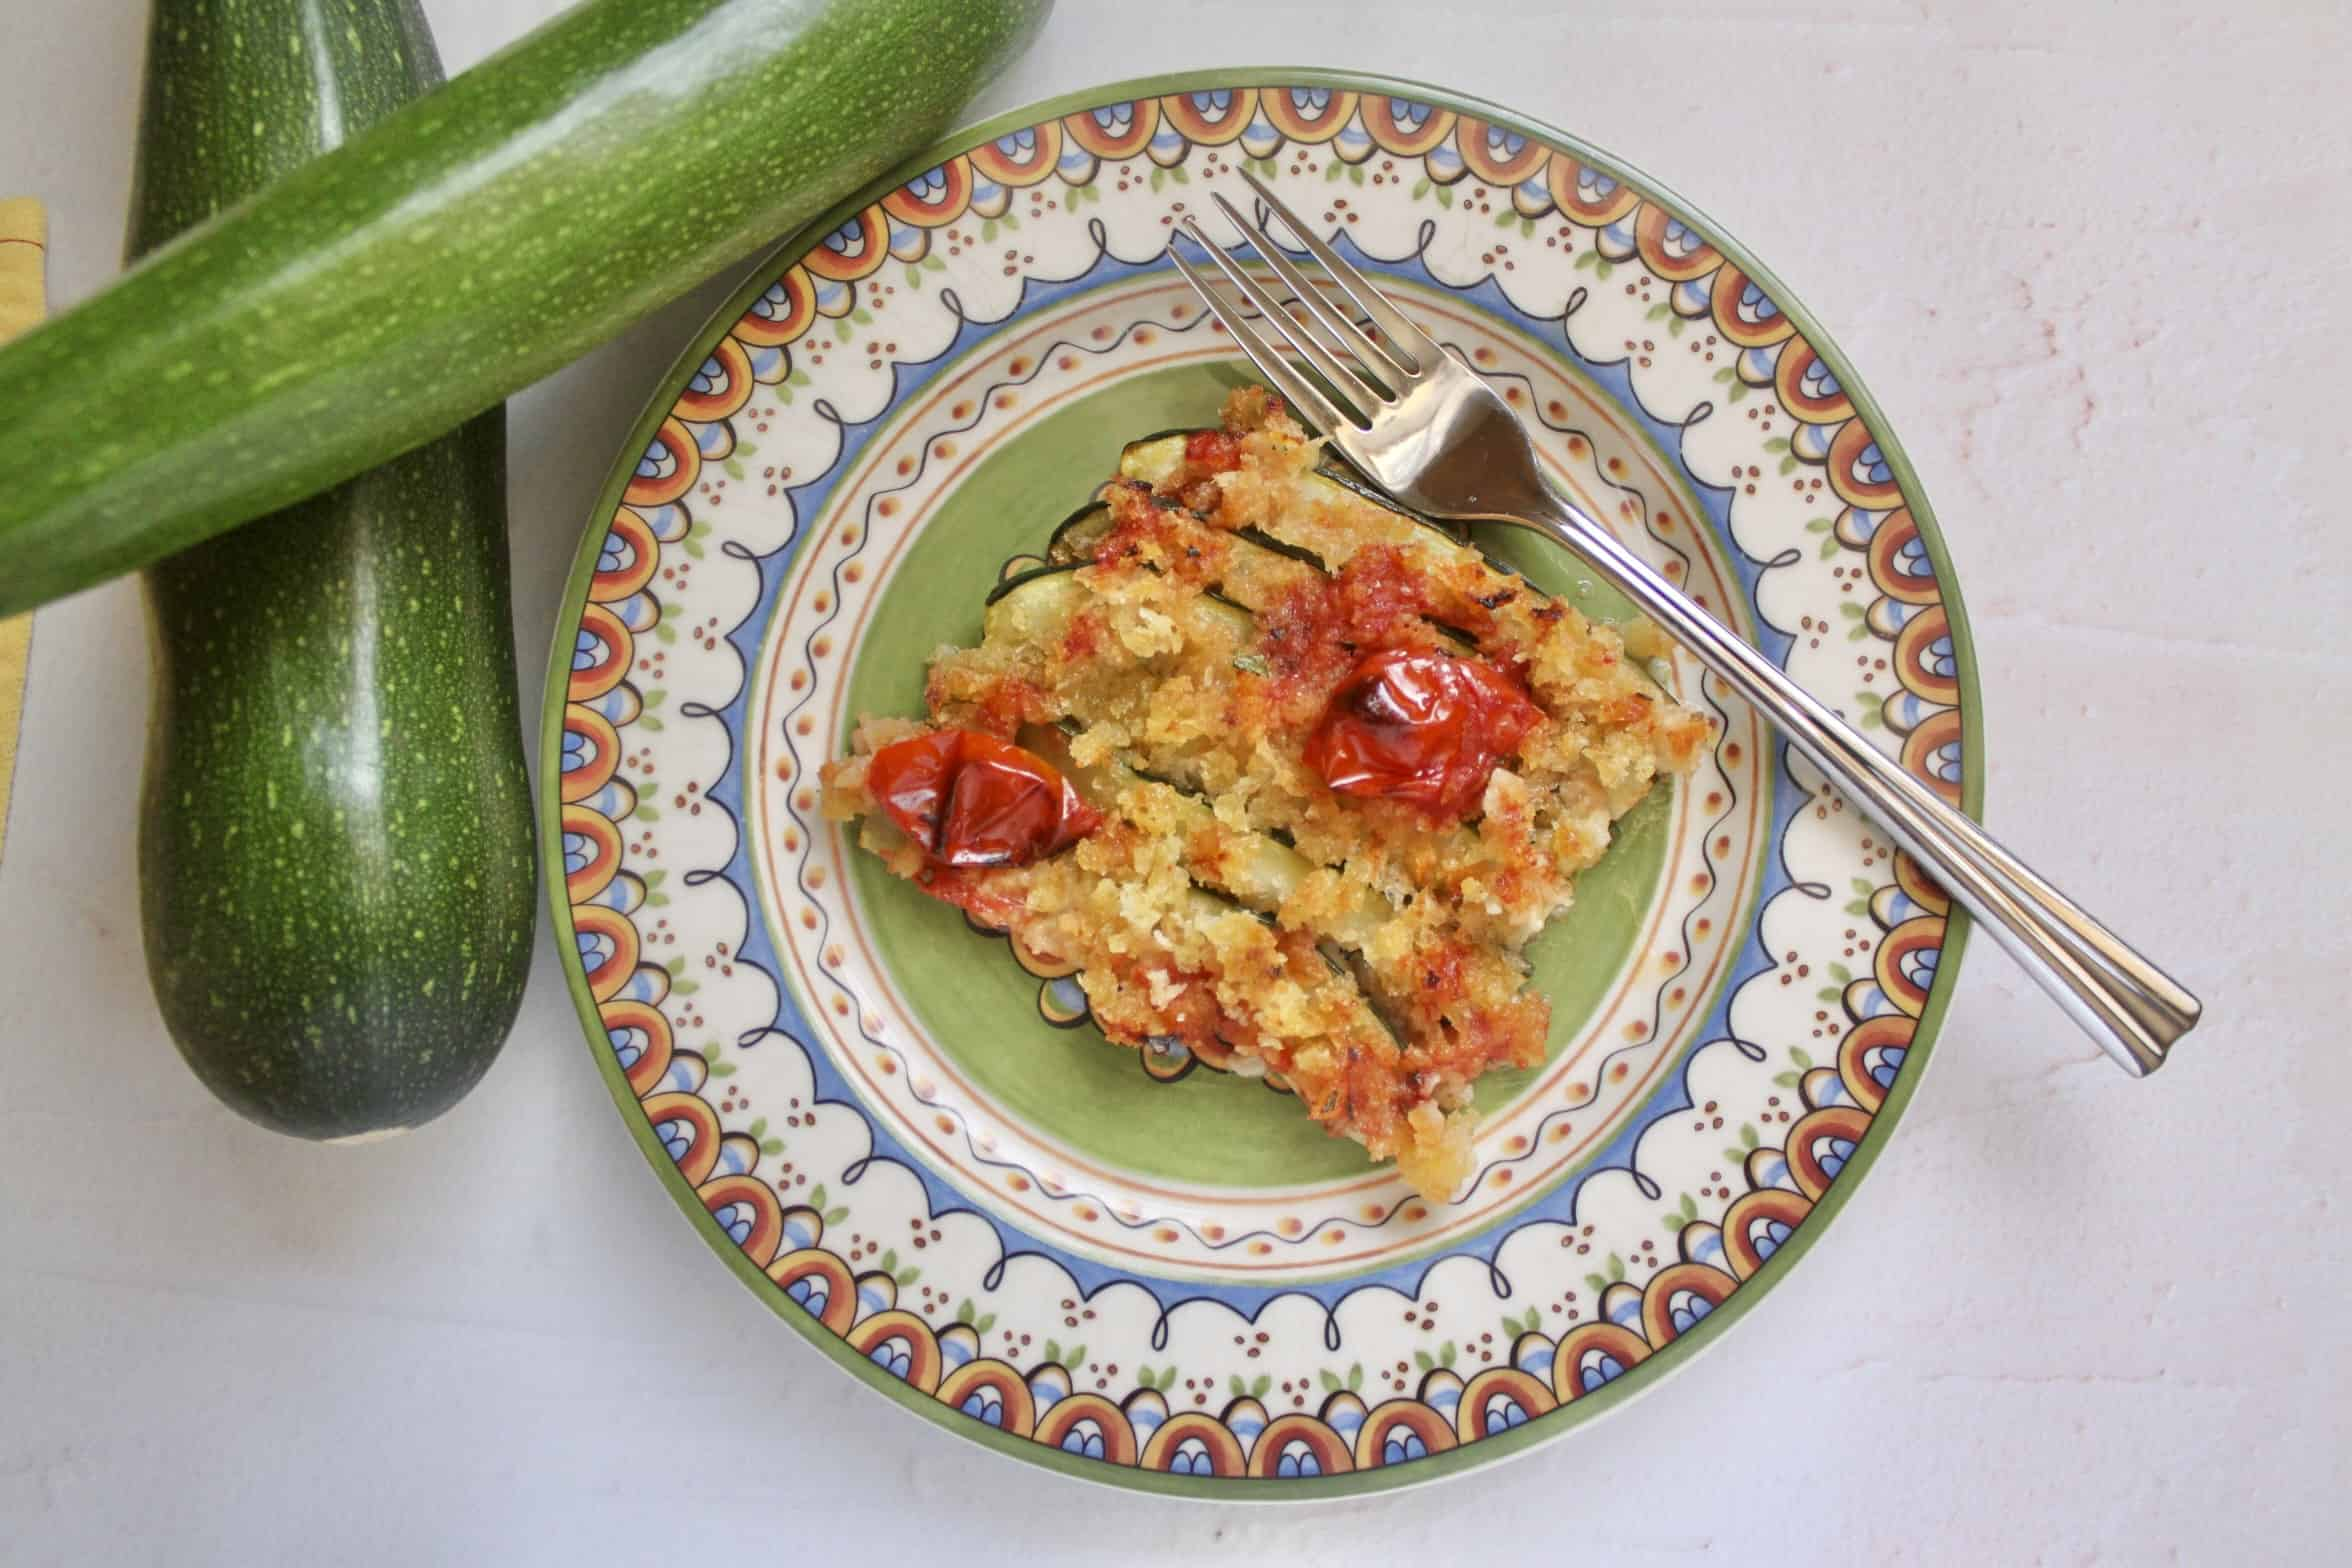 colorful plate with baked zucchini